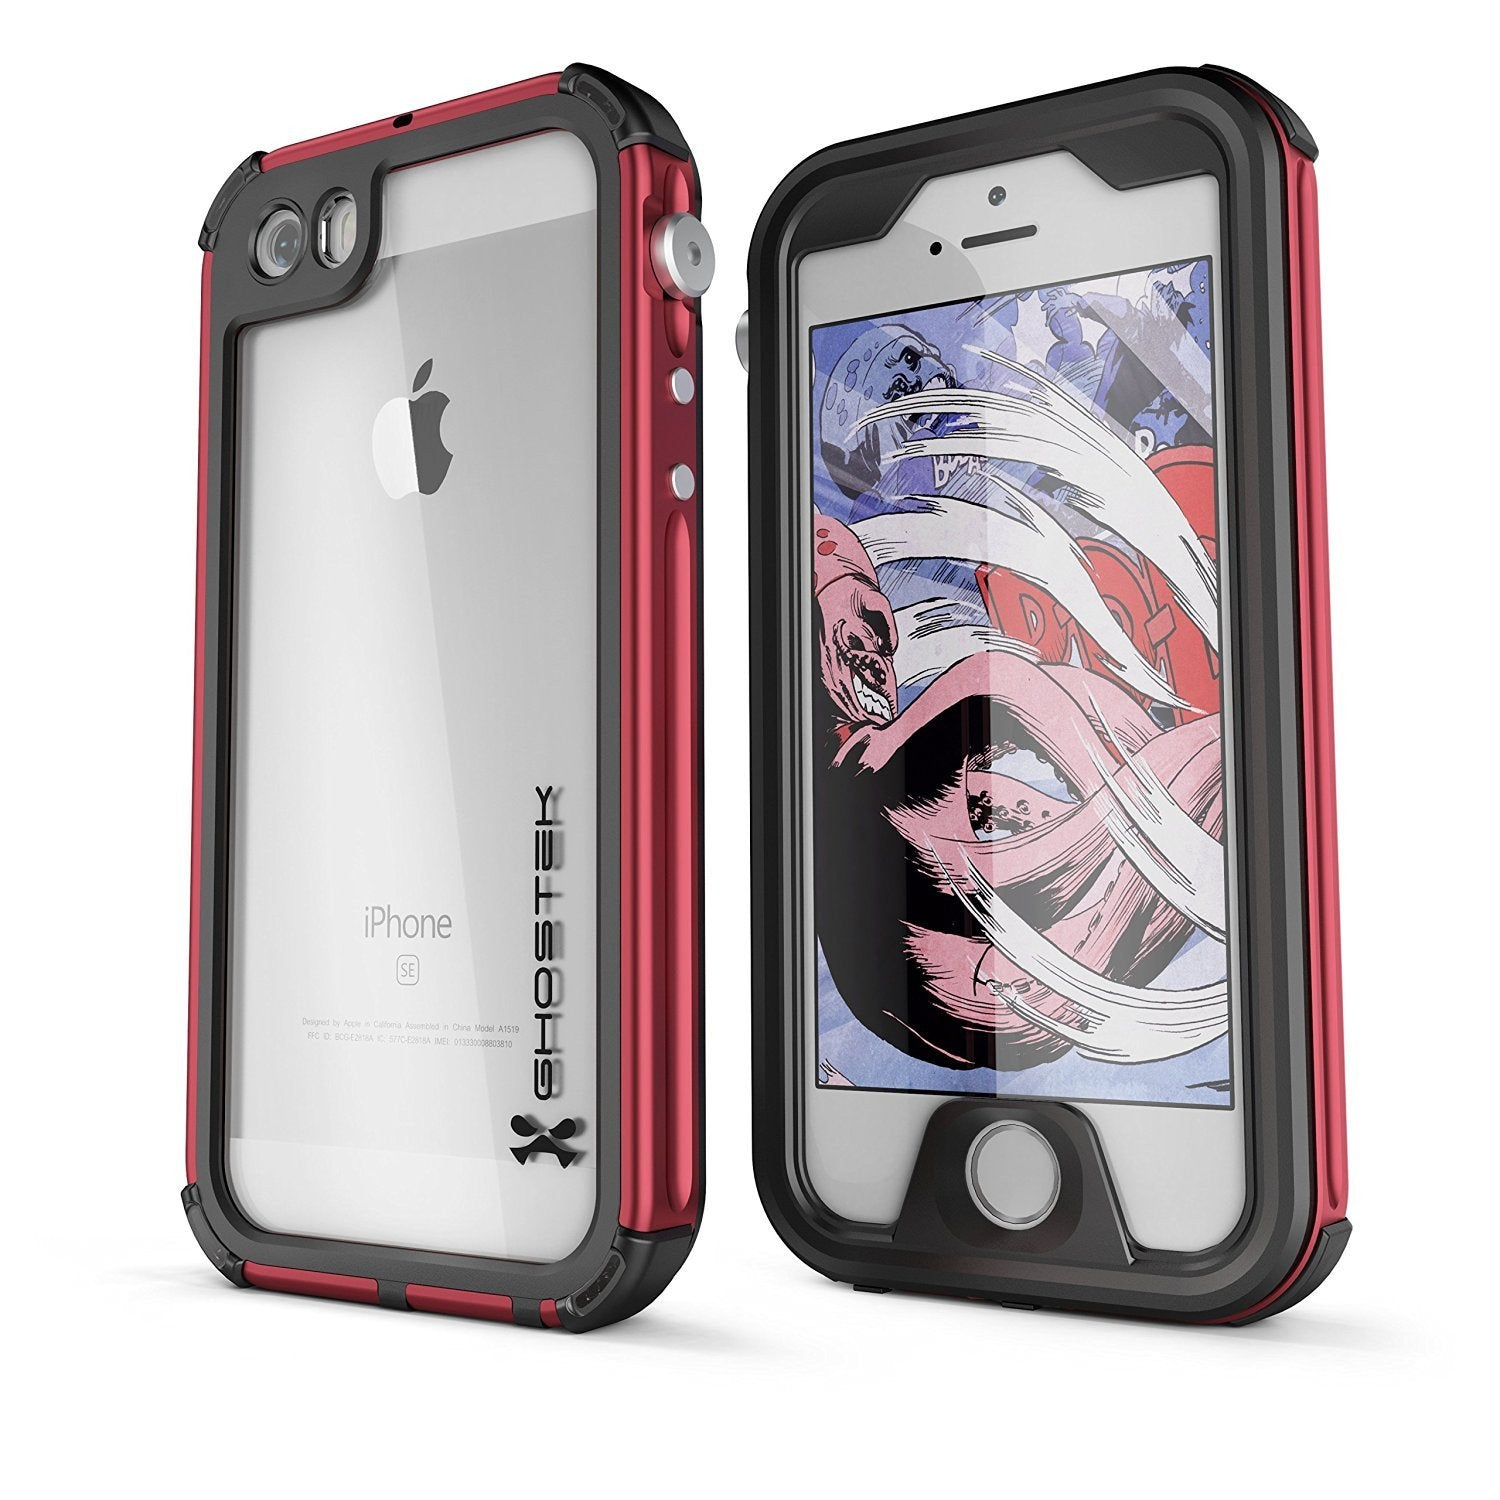 finest selection 8e8f6 05fee iPhone 7 Waterproof Case, Ghostek® Atomic 3 Series for Apple iPhone 7 |  Underwater | Shockproof | Dirt-proof | Snow-proof | Aluminum Frame | ...